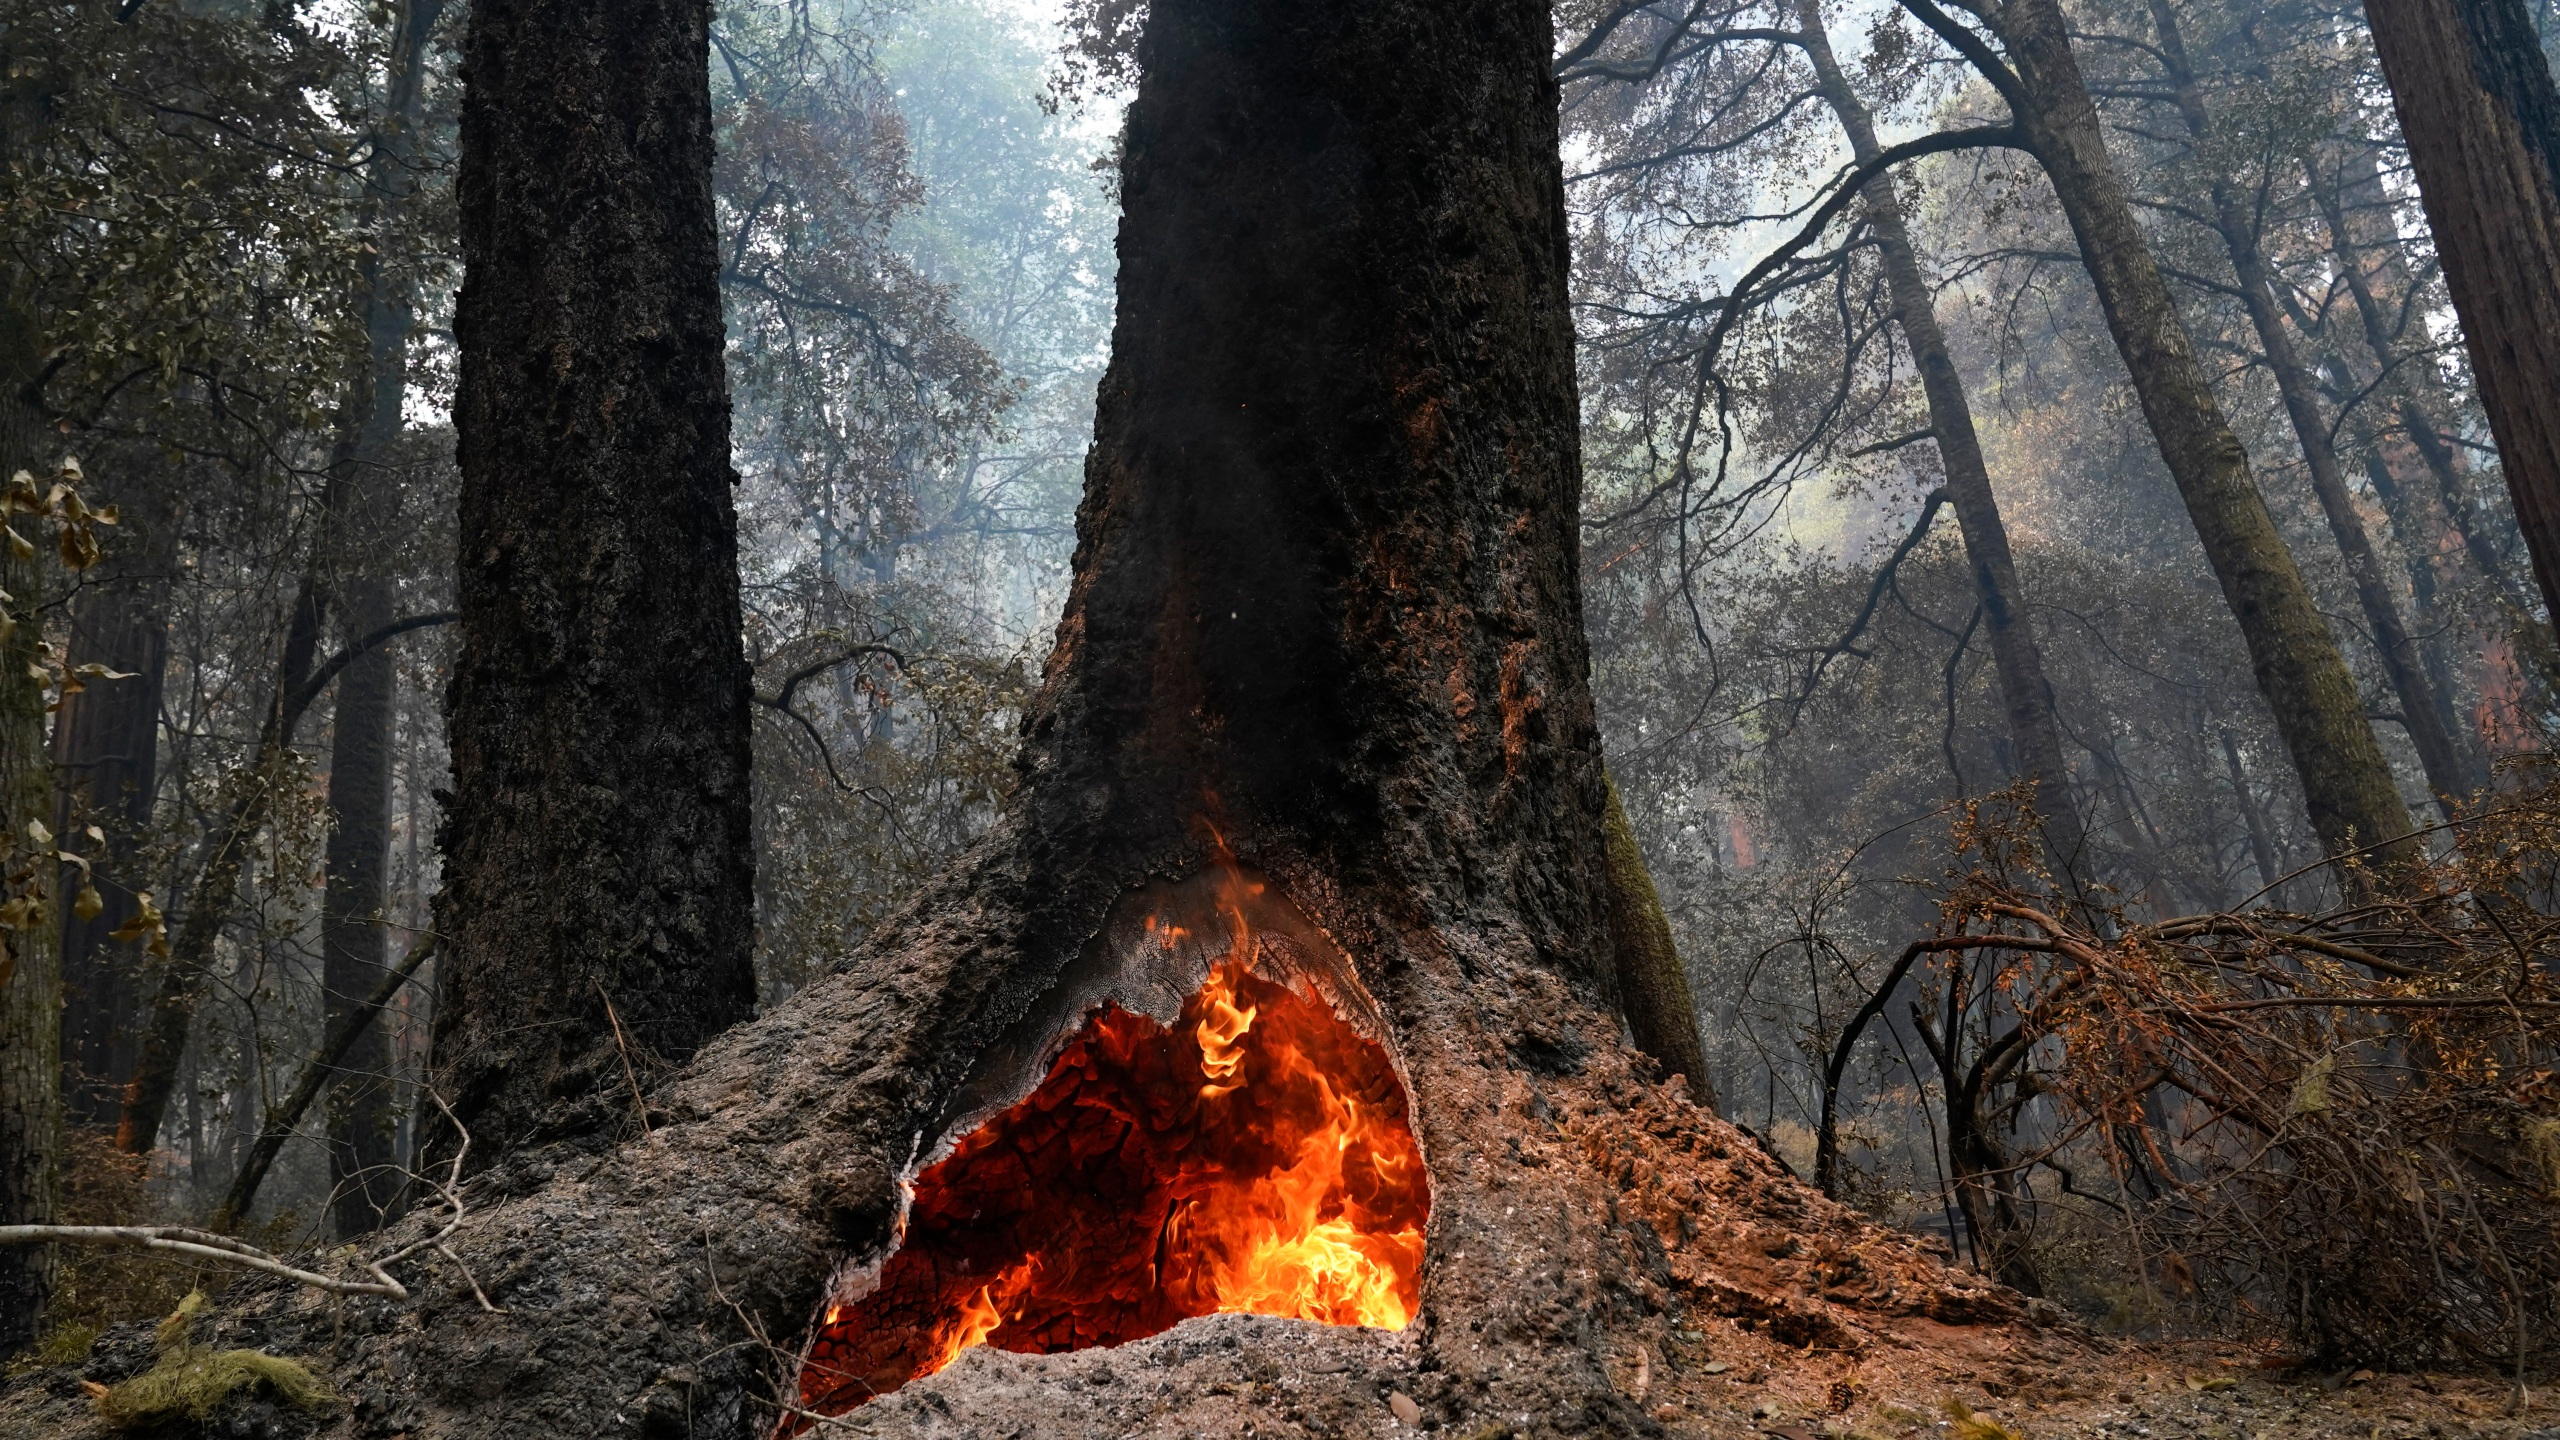 Fire burns in the hollow of an old-growth redwood tree in the Big Basin Redwoods State Park on Aug. 24, 2020. (AP Photo/Marcio Jose Sanchez)